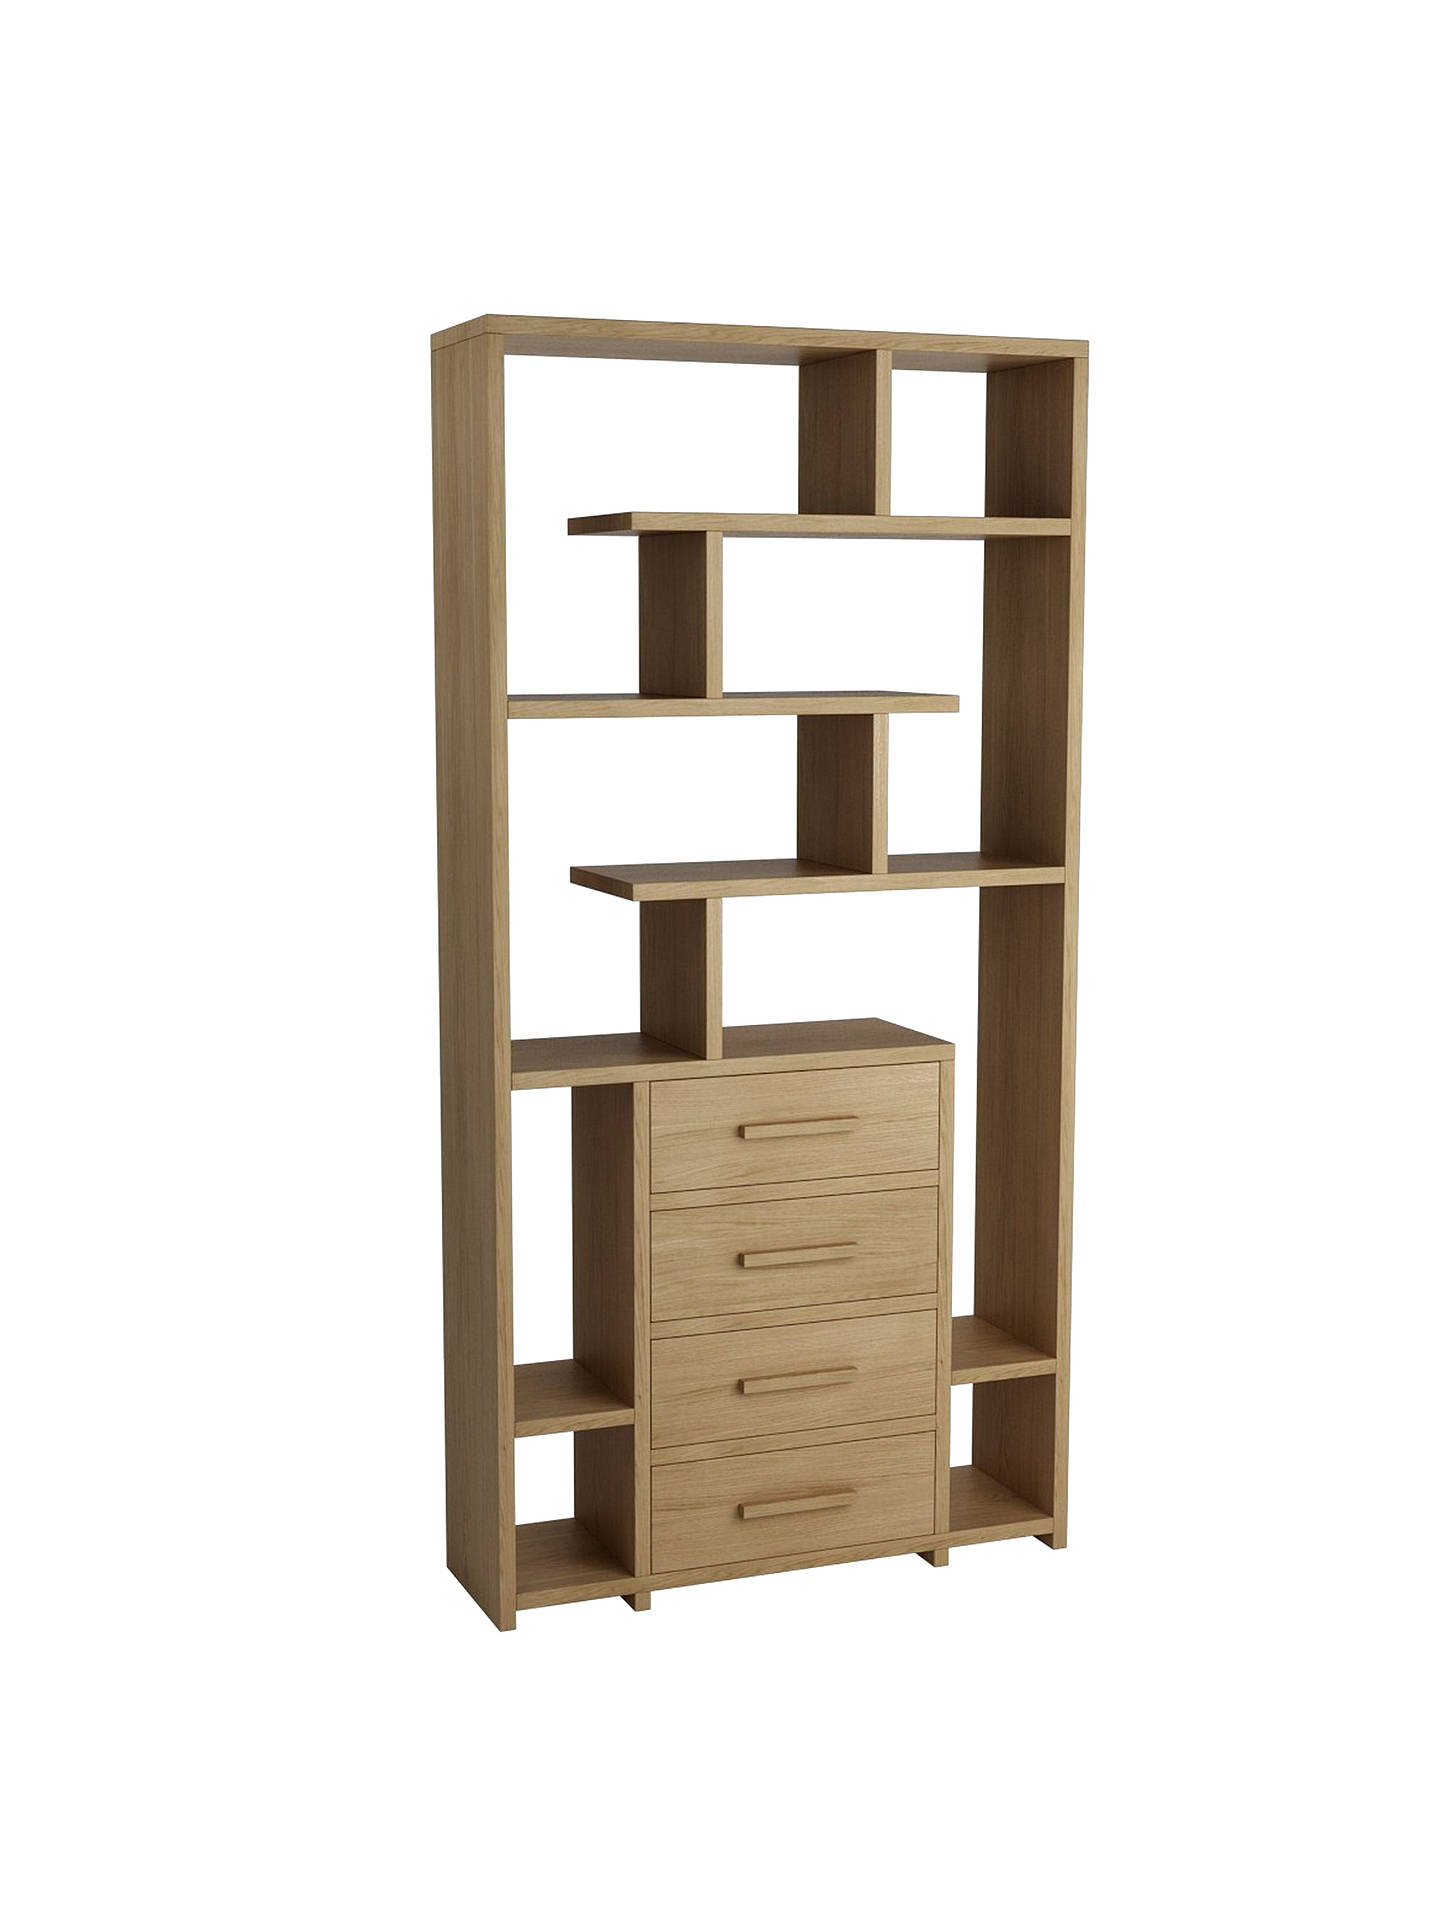 Buy John Lewis & Partners Henry 4 Drawer Bookcase Online at johnlewis.com